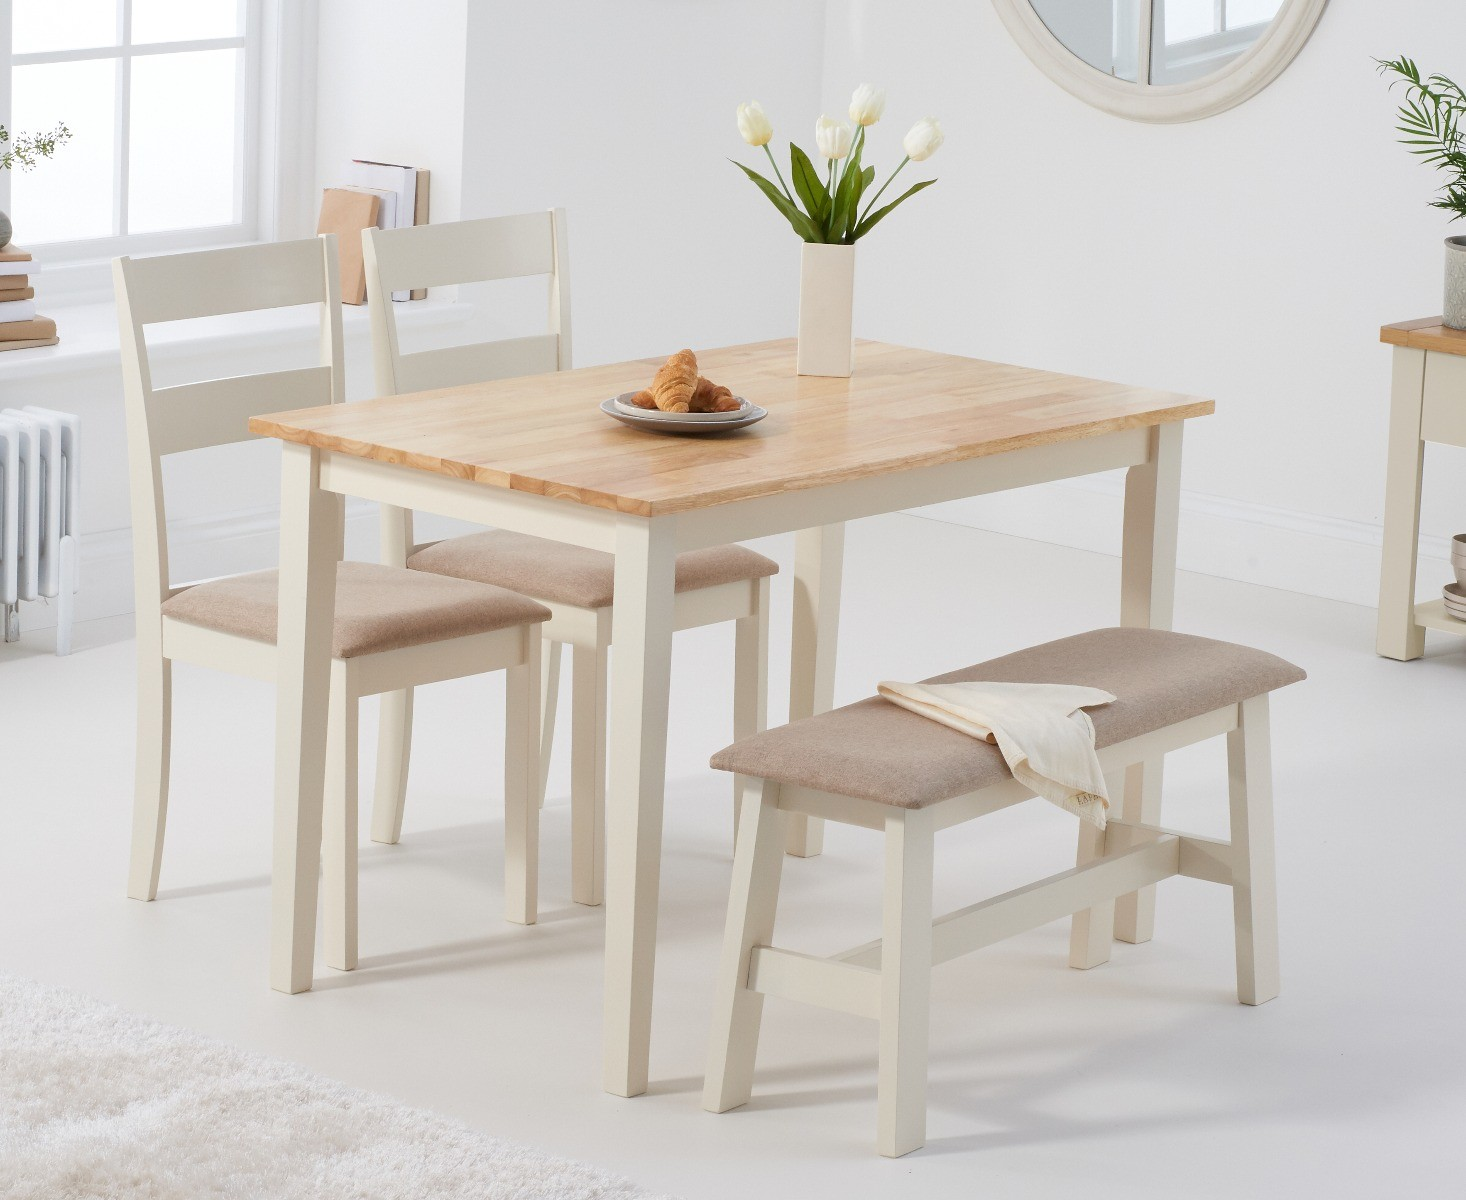 Product photograph showing Chiltern 114cm Oak And Cream Table With Chiltern Chairs With Cream Fabric Seats And Bench - Oak And Cream 2 Chairs